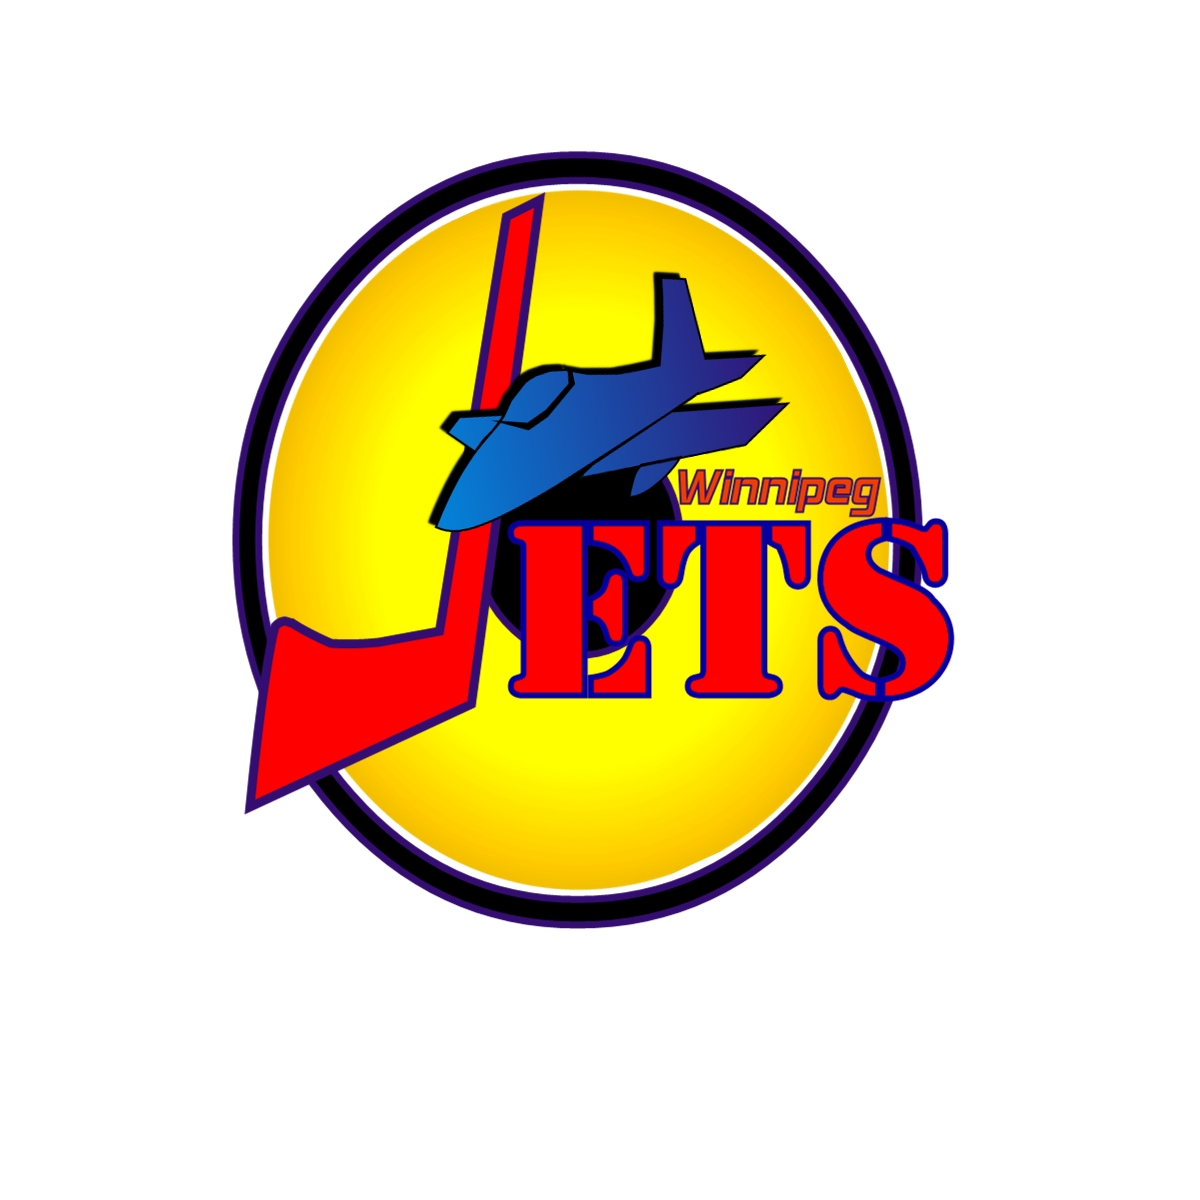 Logo Design by Joseph calunsag Cagaanan - Entry No. 21 in the Logo Design Contest Winnipeg Jets Logo Design Contest.